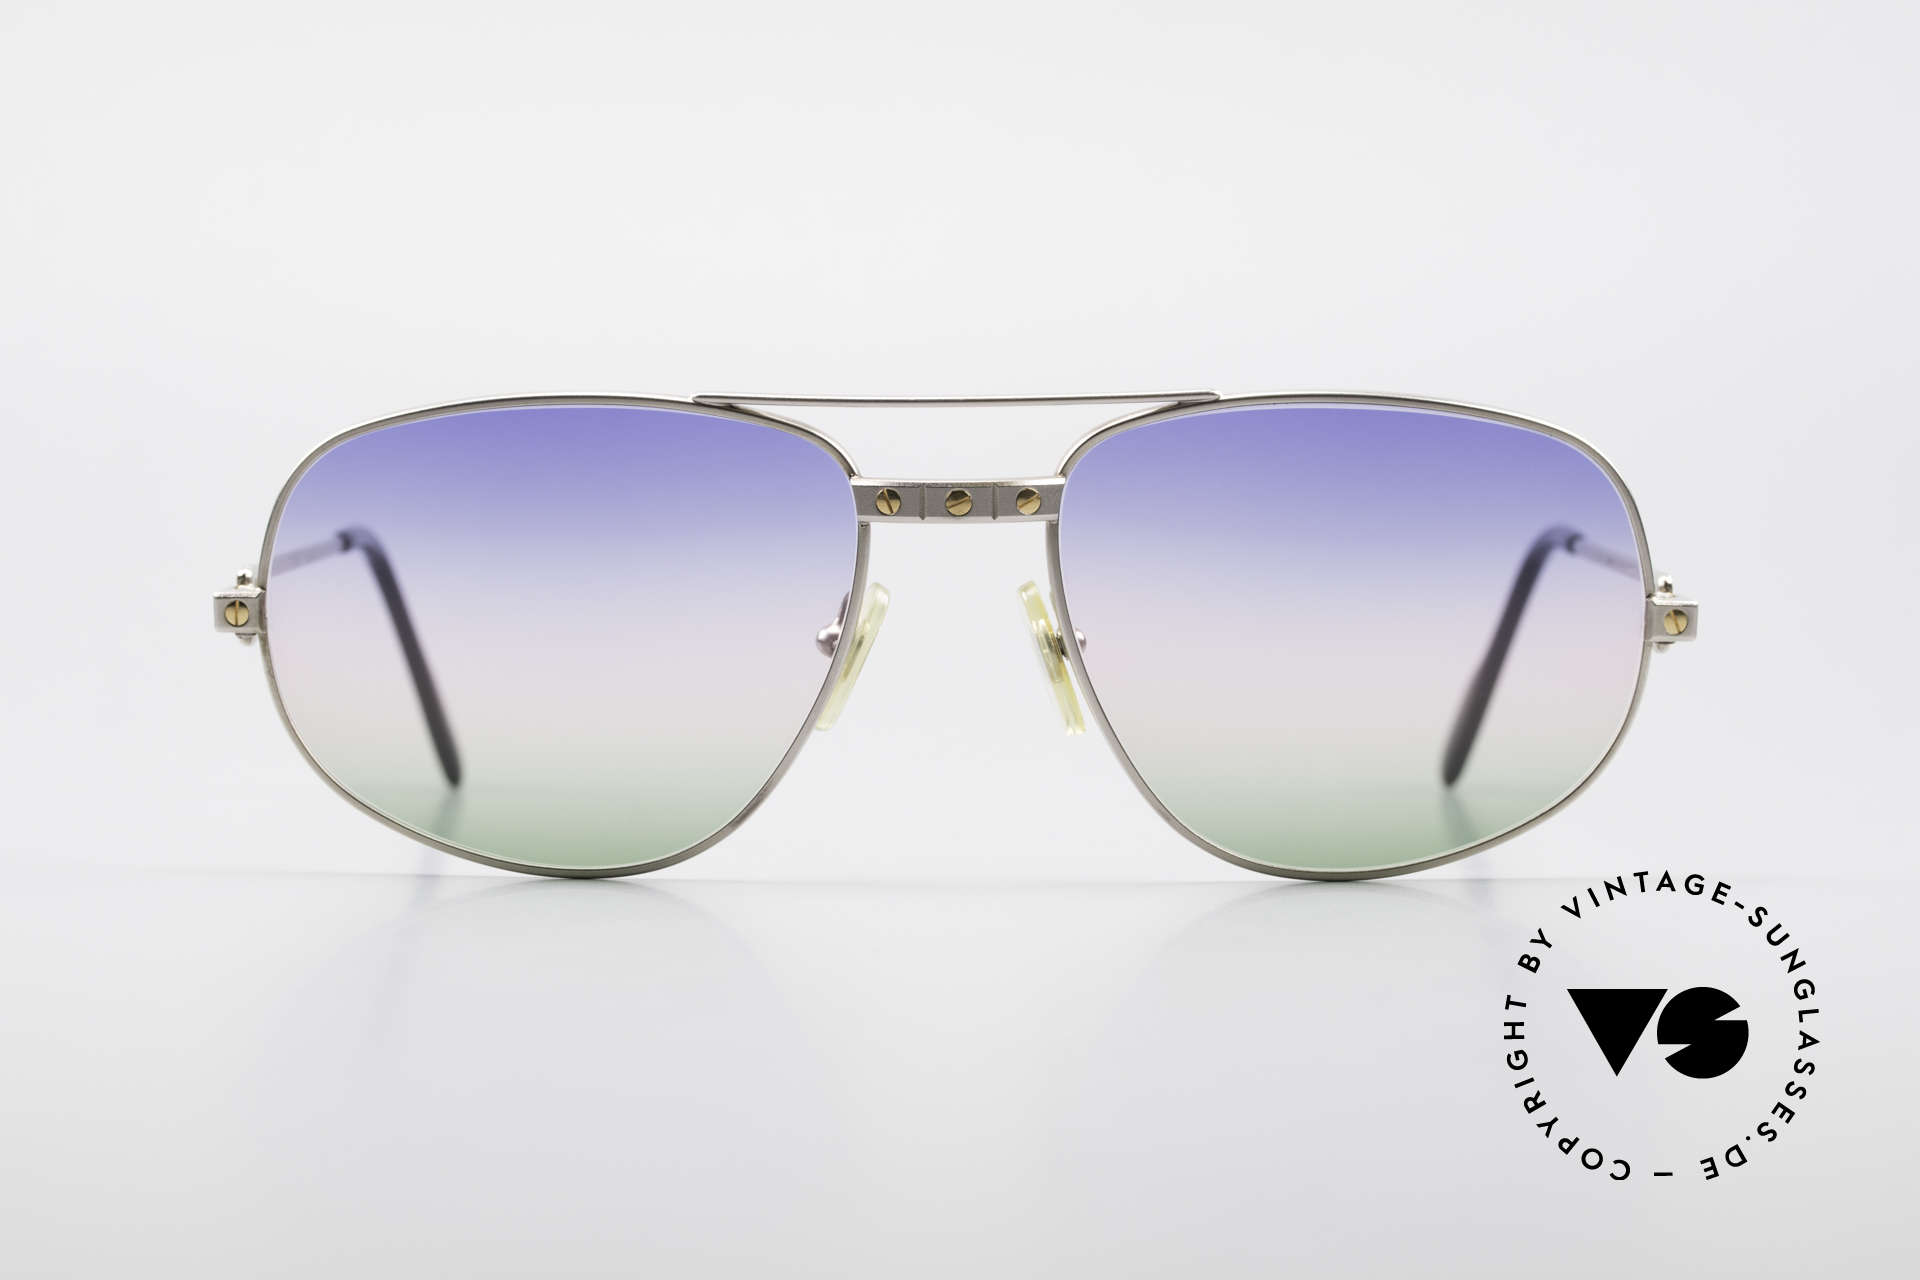 Cartier Romance Santos - L Palladium Shades Tricolored, original Cartier vintage luxury sunglasses from 1988, Made for Men